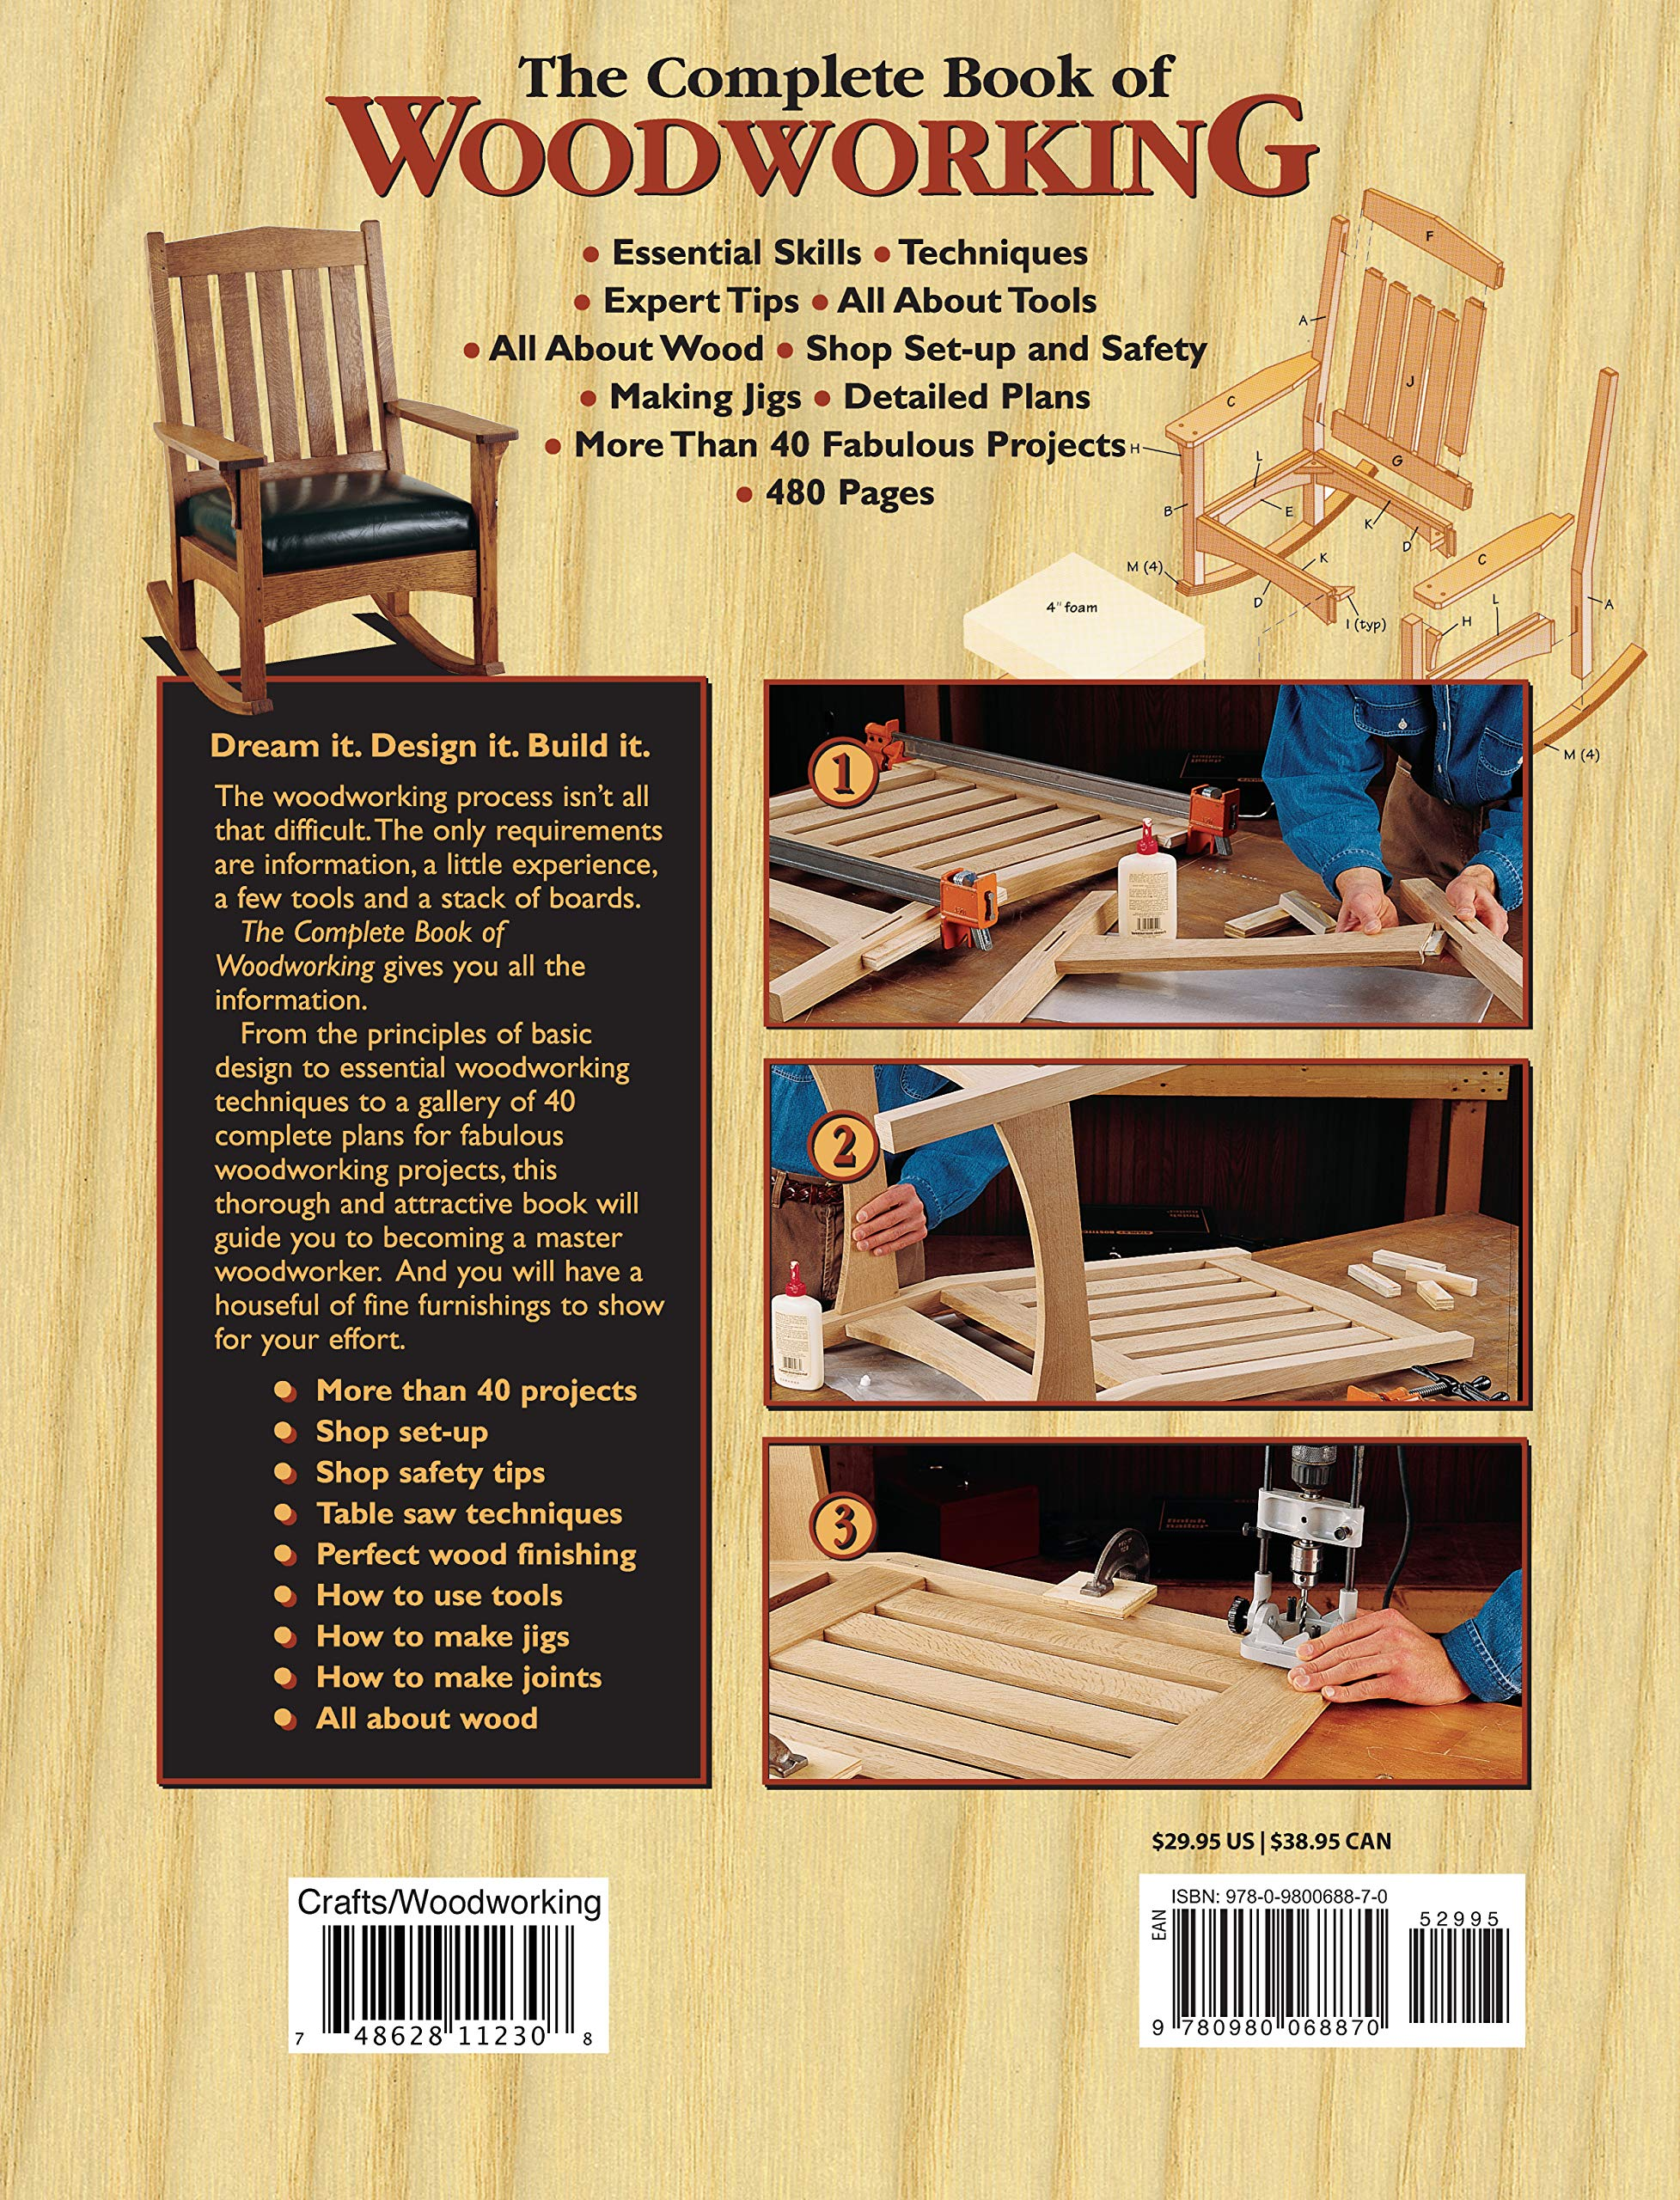 The Complete Book of Woodworking: Step-by-Step Guide to Essential Woodworking Skills, Techniques and Tips (Landauer) More Than 40 Projects with Detailed, Easy-to-Follow Plans and Over 200 Photos by Design Originals (Image #2)